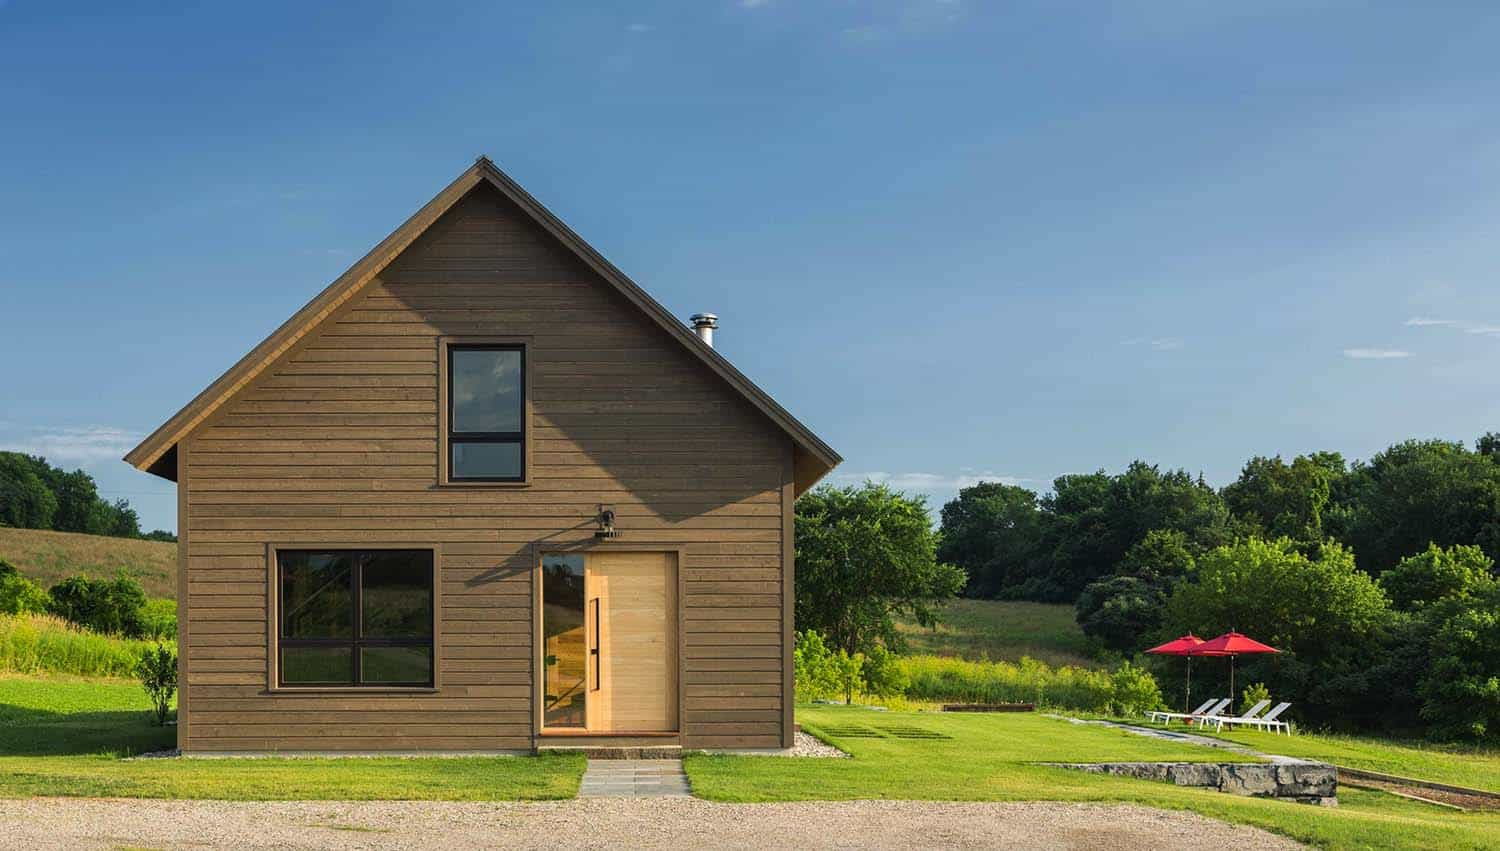 Small and cozy modern barn house getaway in vermont for Barn style house designs